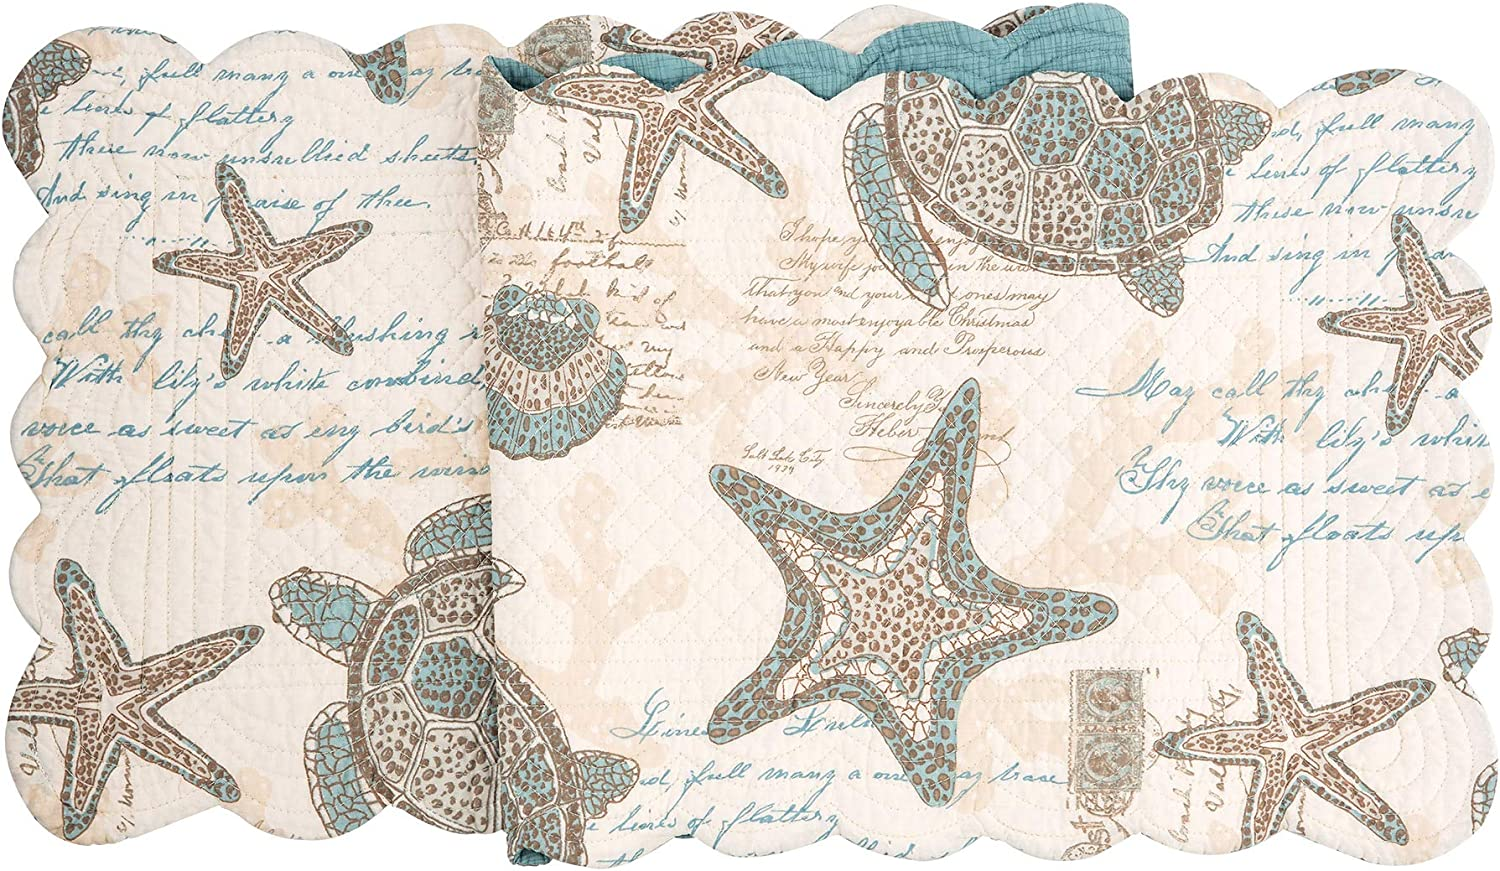 C&F Home Amber Sands Quilted Runner Reversible Cotton Nautical Coastal Sea Life Beach Tablelinen for Dinners Everyday Use Runner 14x51 Tan